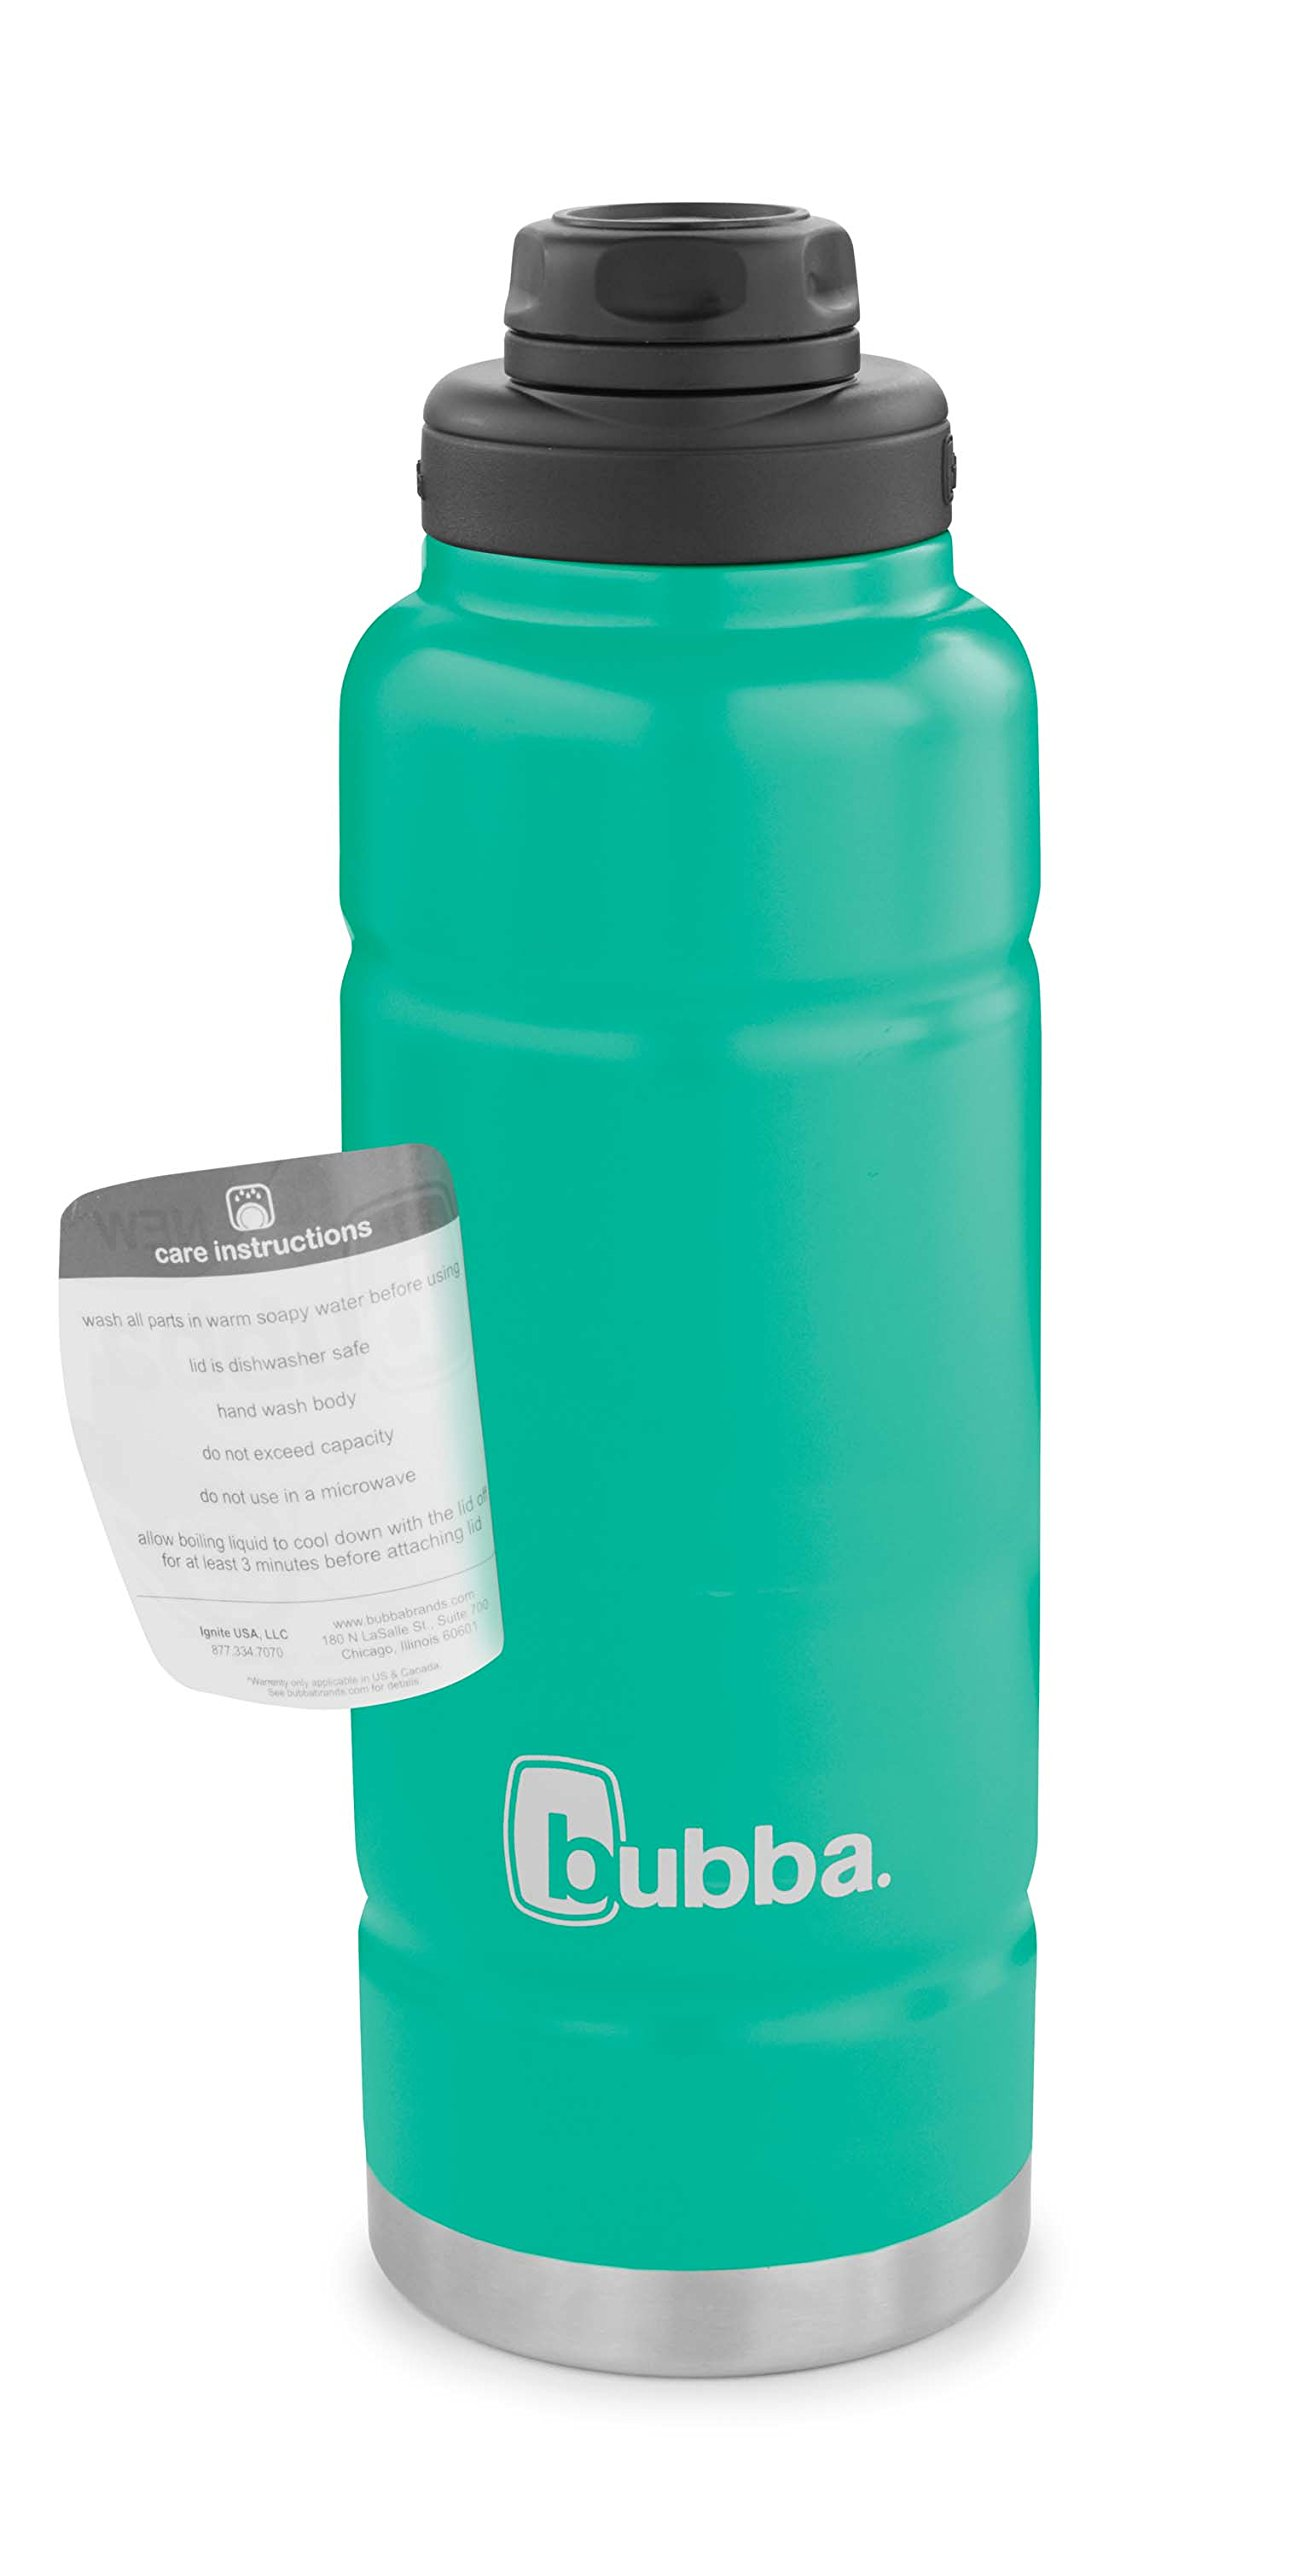 Bubba Trailblazer Vacuum-Insulated Stainless Steel Water Bottle, 40 oz, Rock Candy by bubba (Image #6)